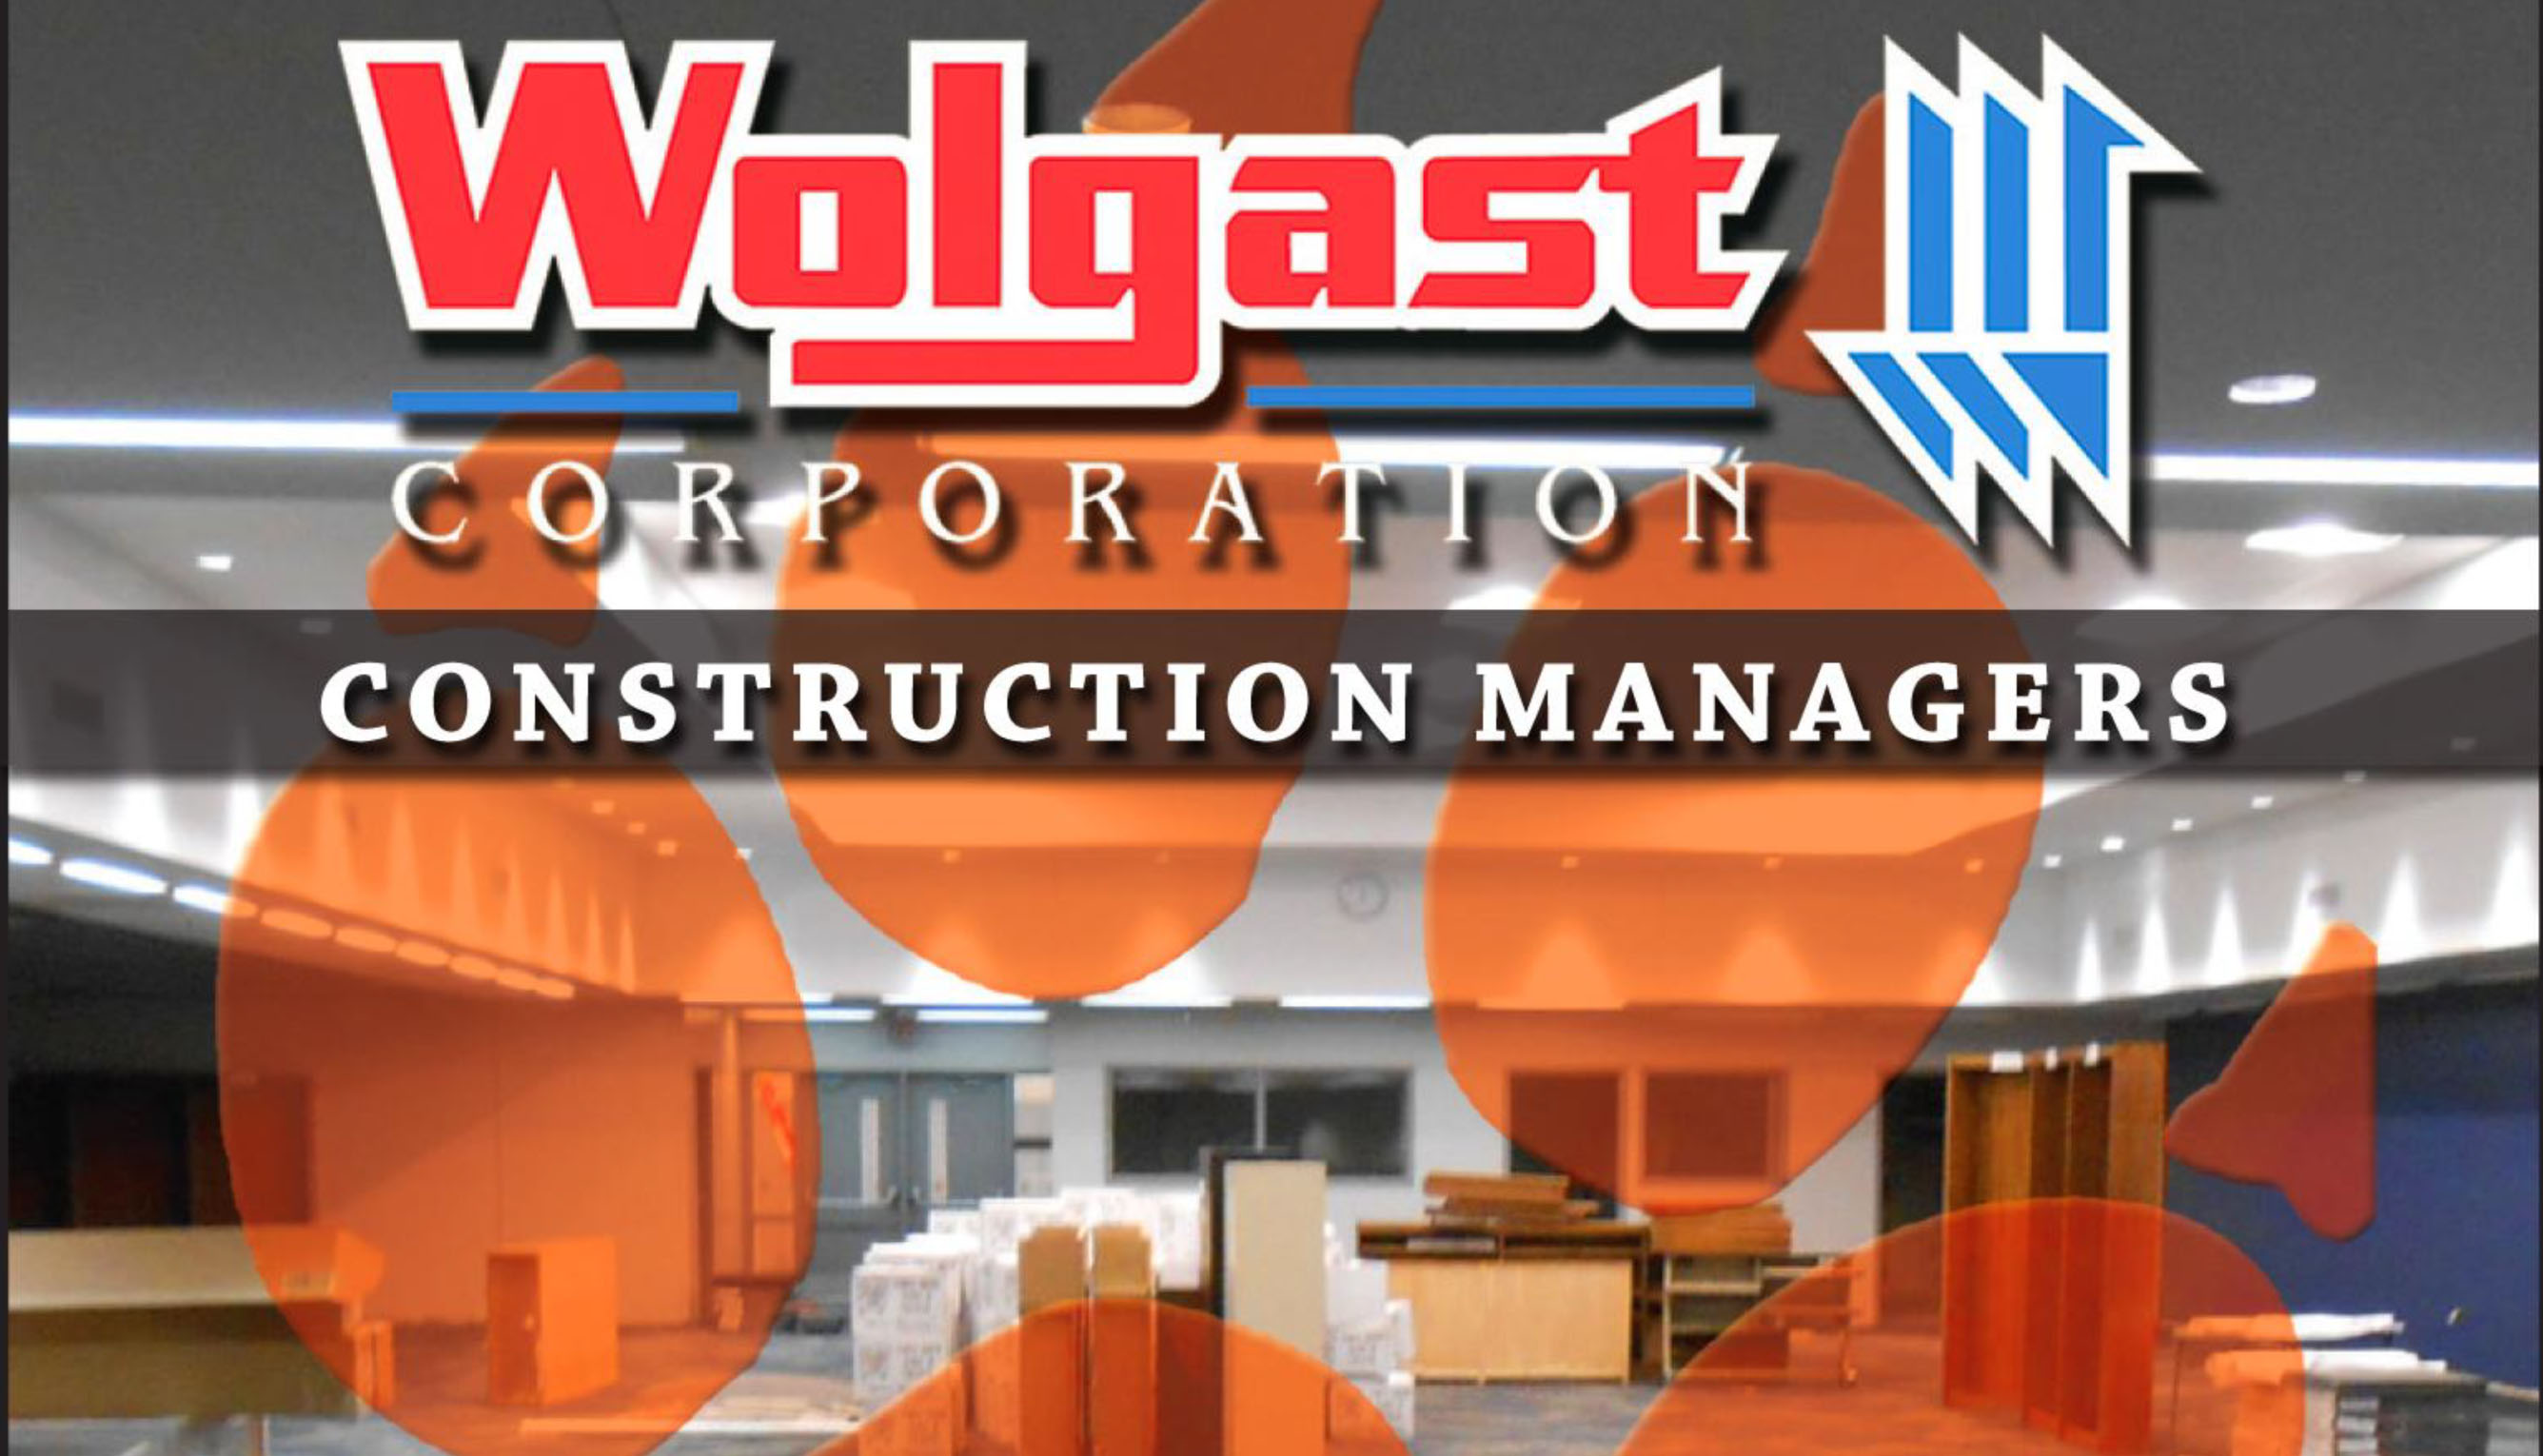 Wolgast Corporation